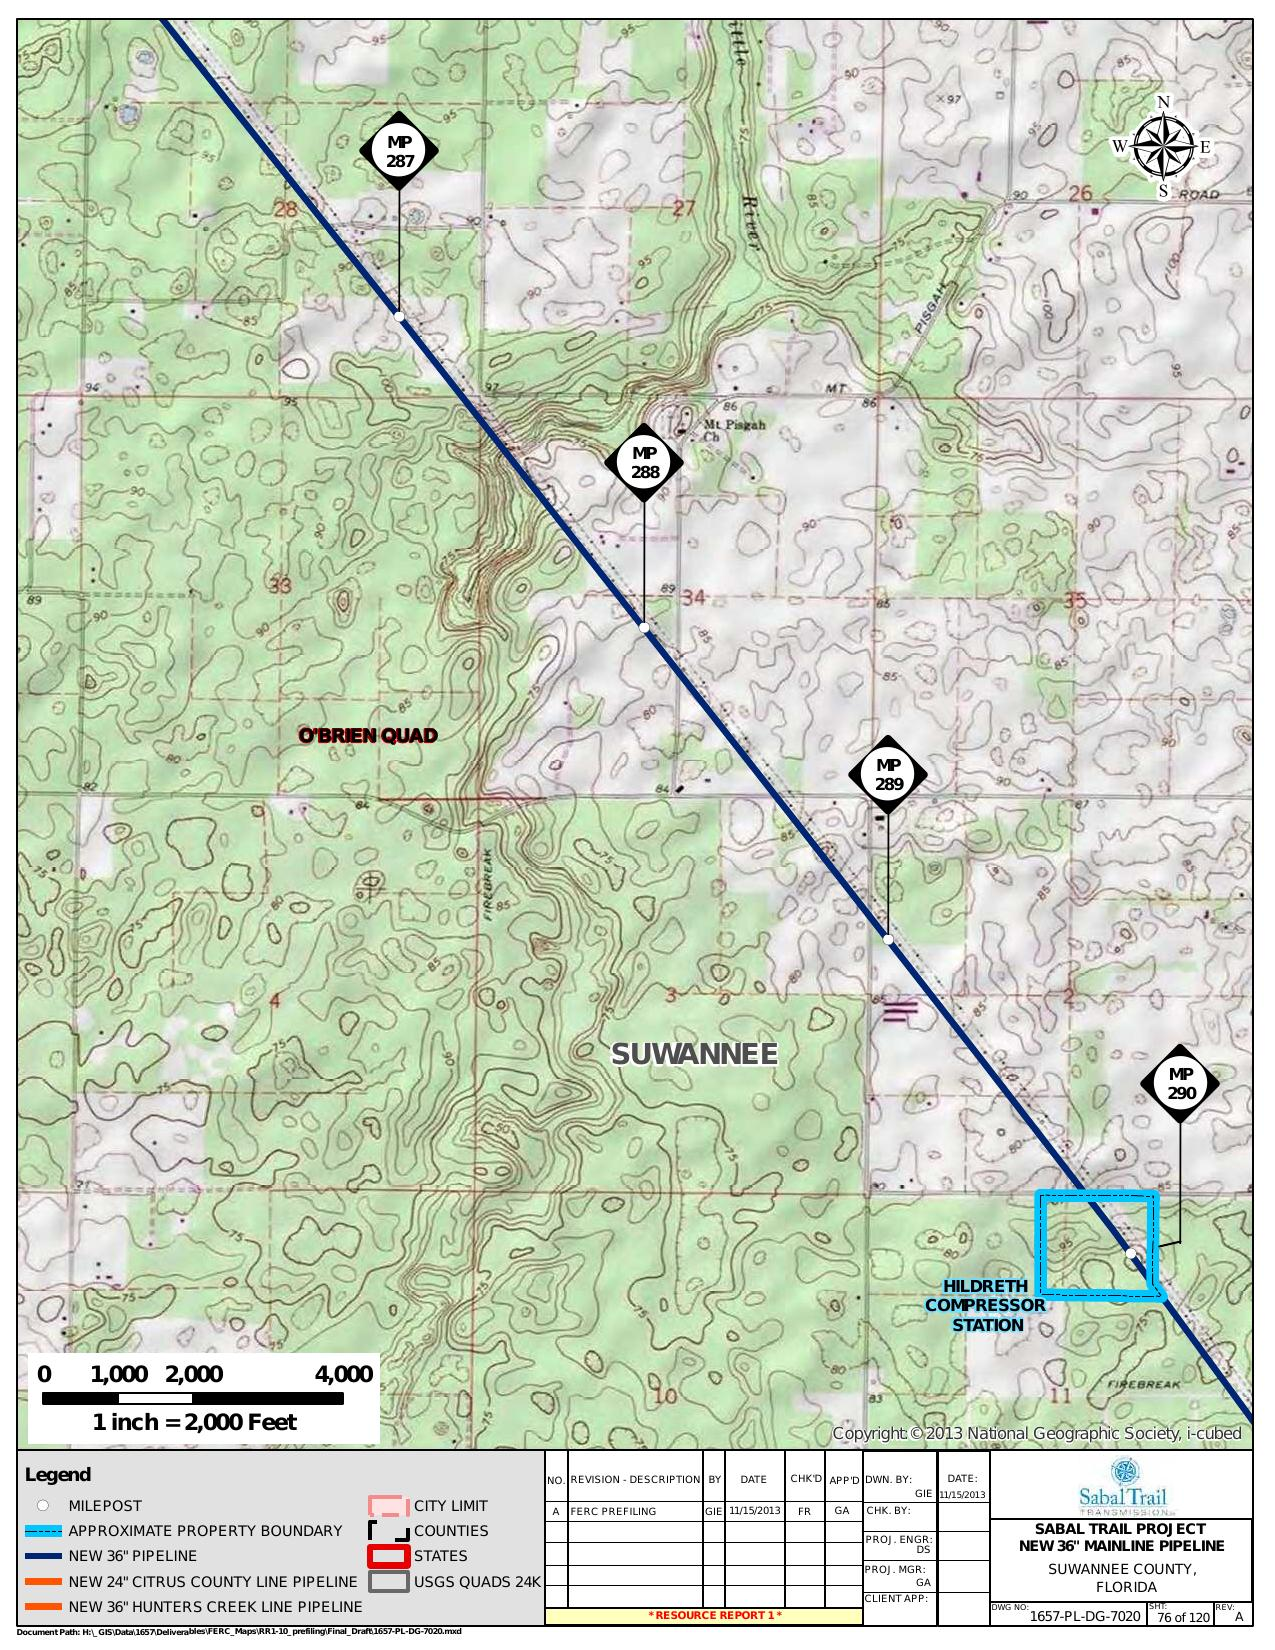 Mt Pisgah Church and Hildreth Compressor Station, Suwannee County, Georgia, in General Project Description, by SpectraBusters, for FERC Docket No. PF14-1-000, 15 November 2013, converted by SpectraBusters